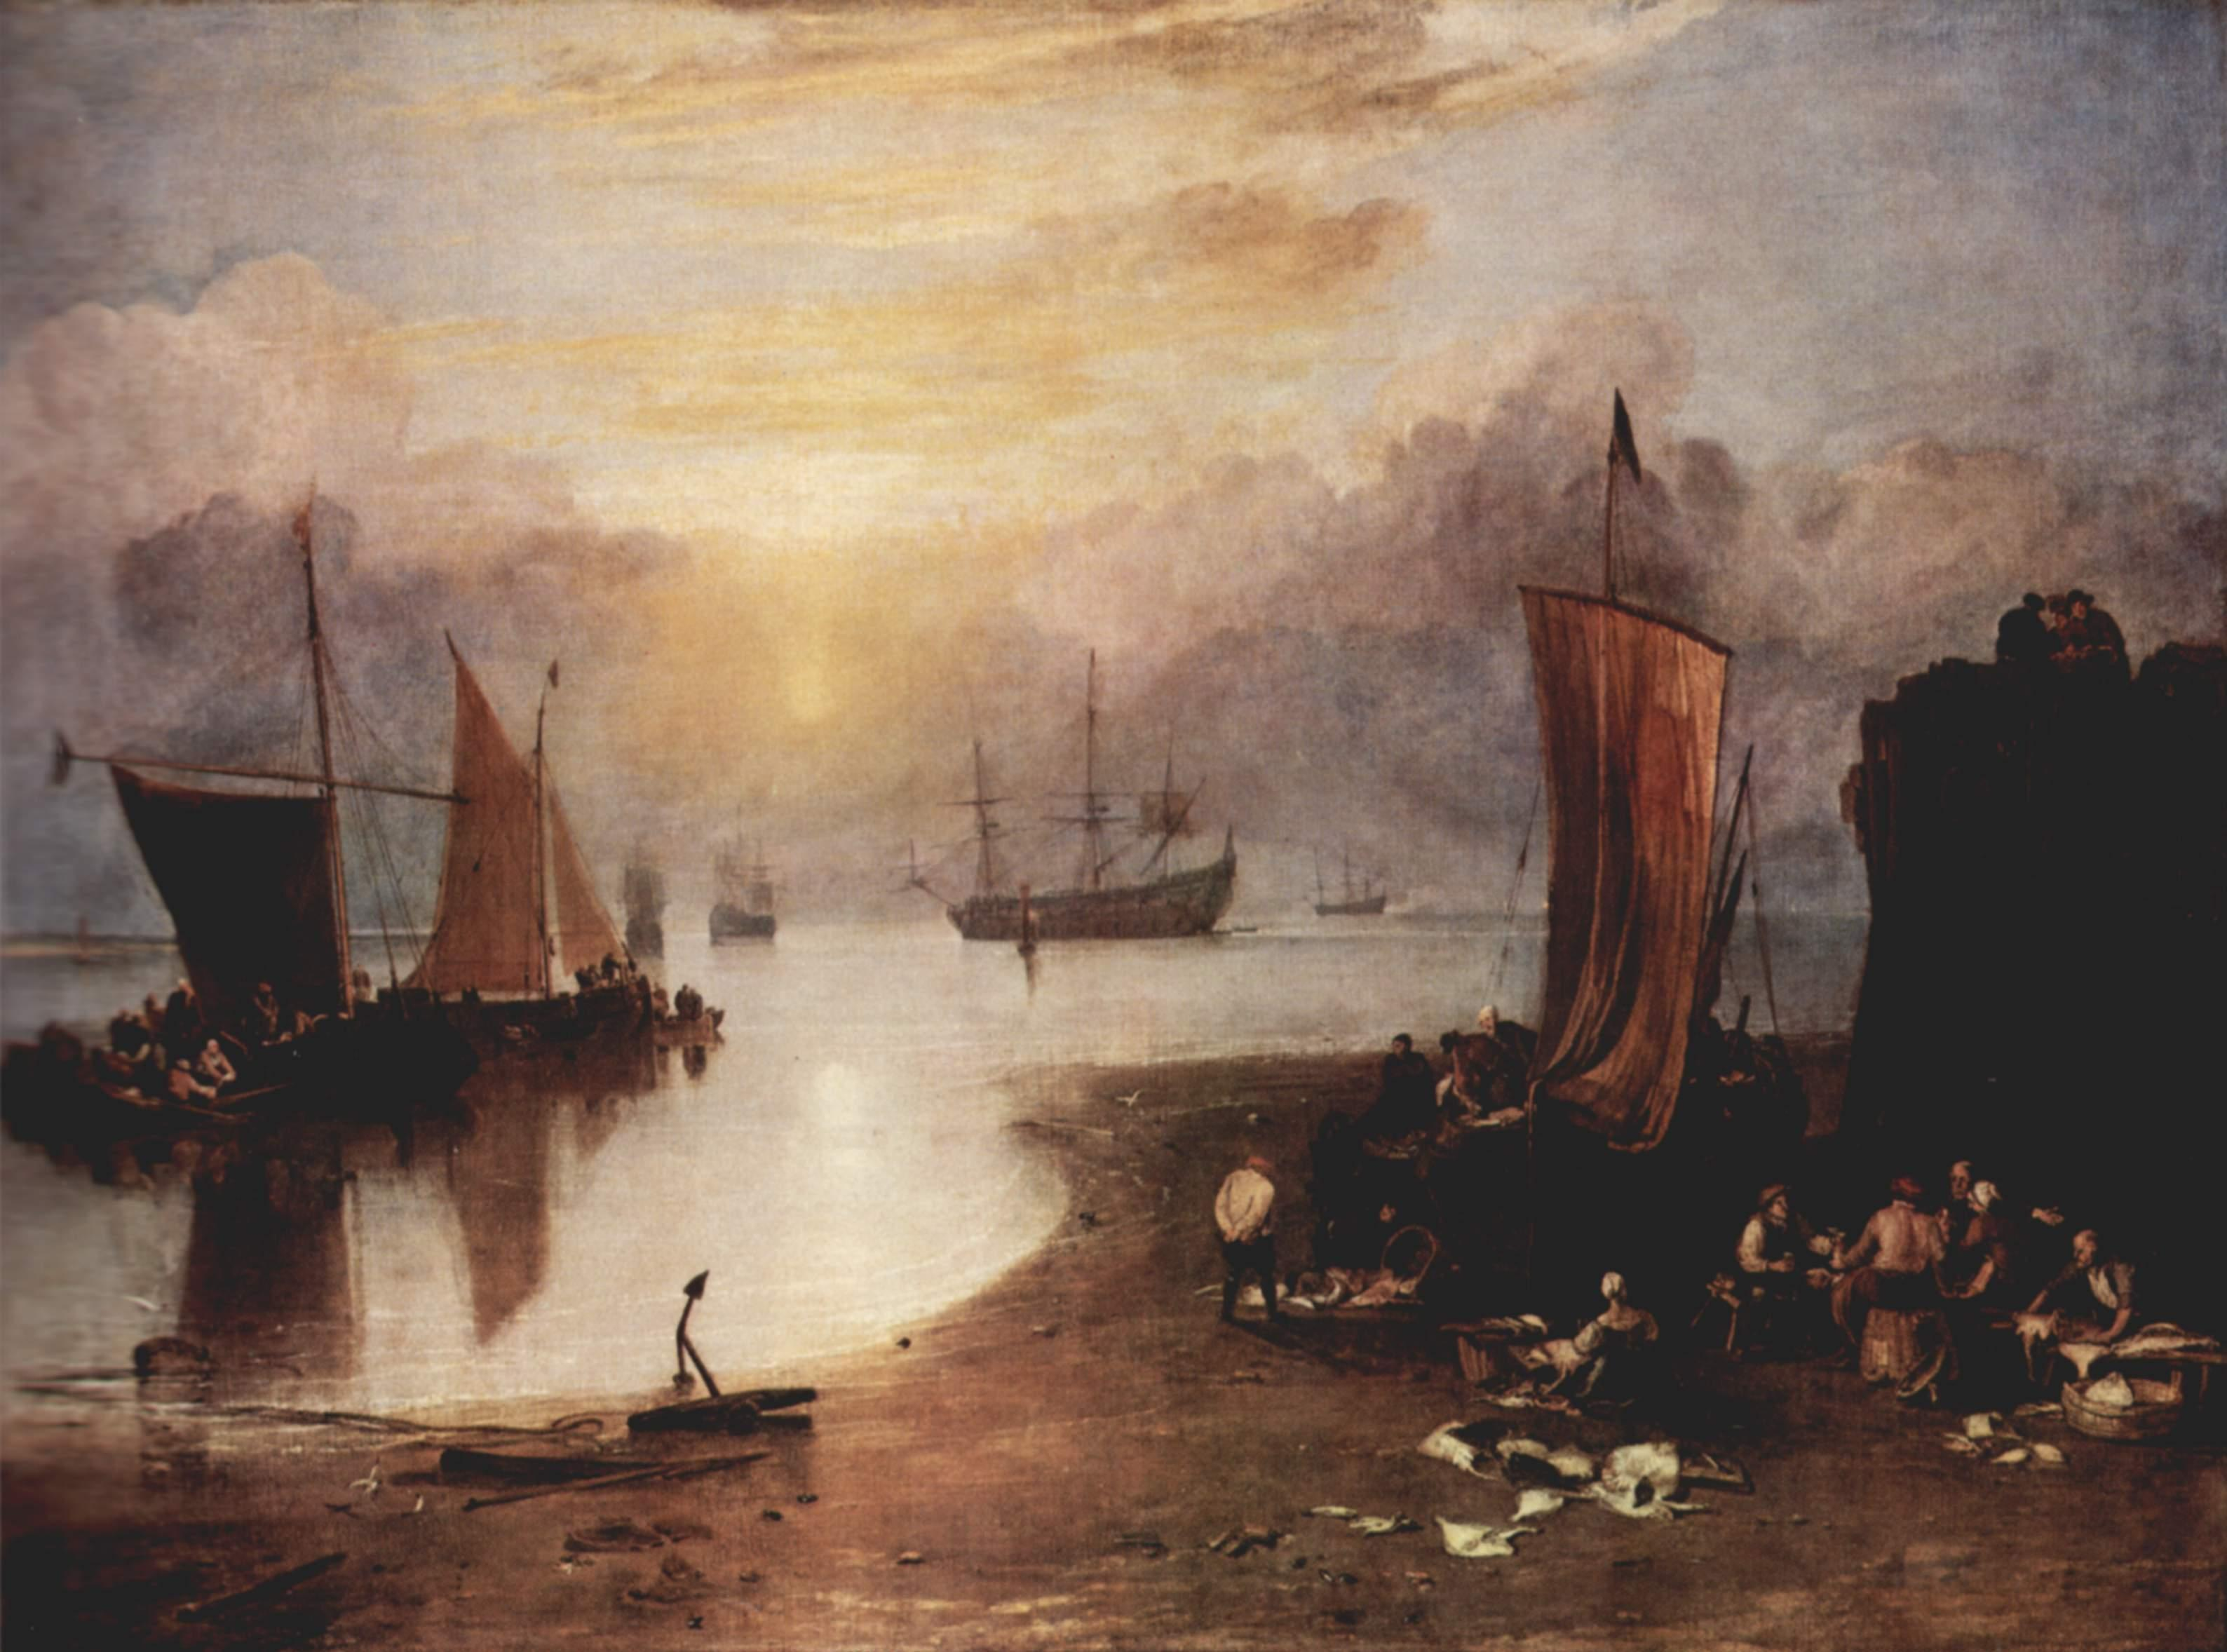 JOSEPH MALLORD WILLIAM TURNER, EL PINTOR DE PAISAJES